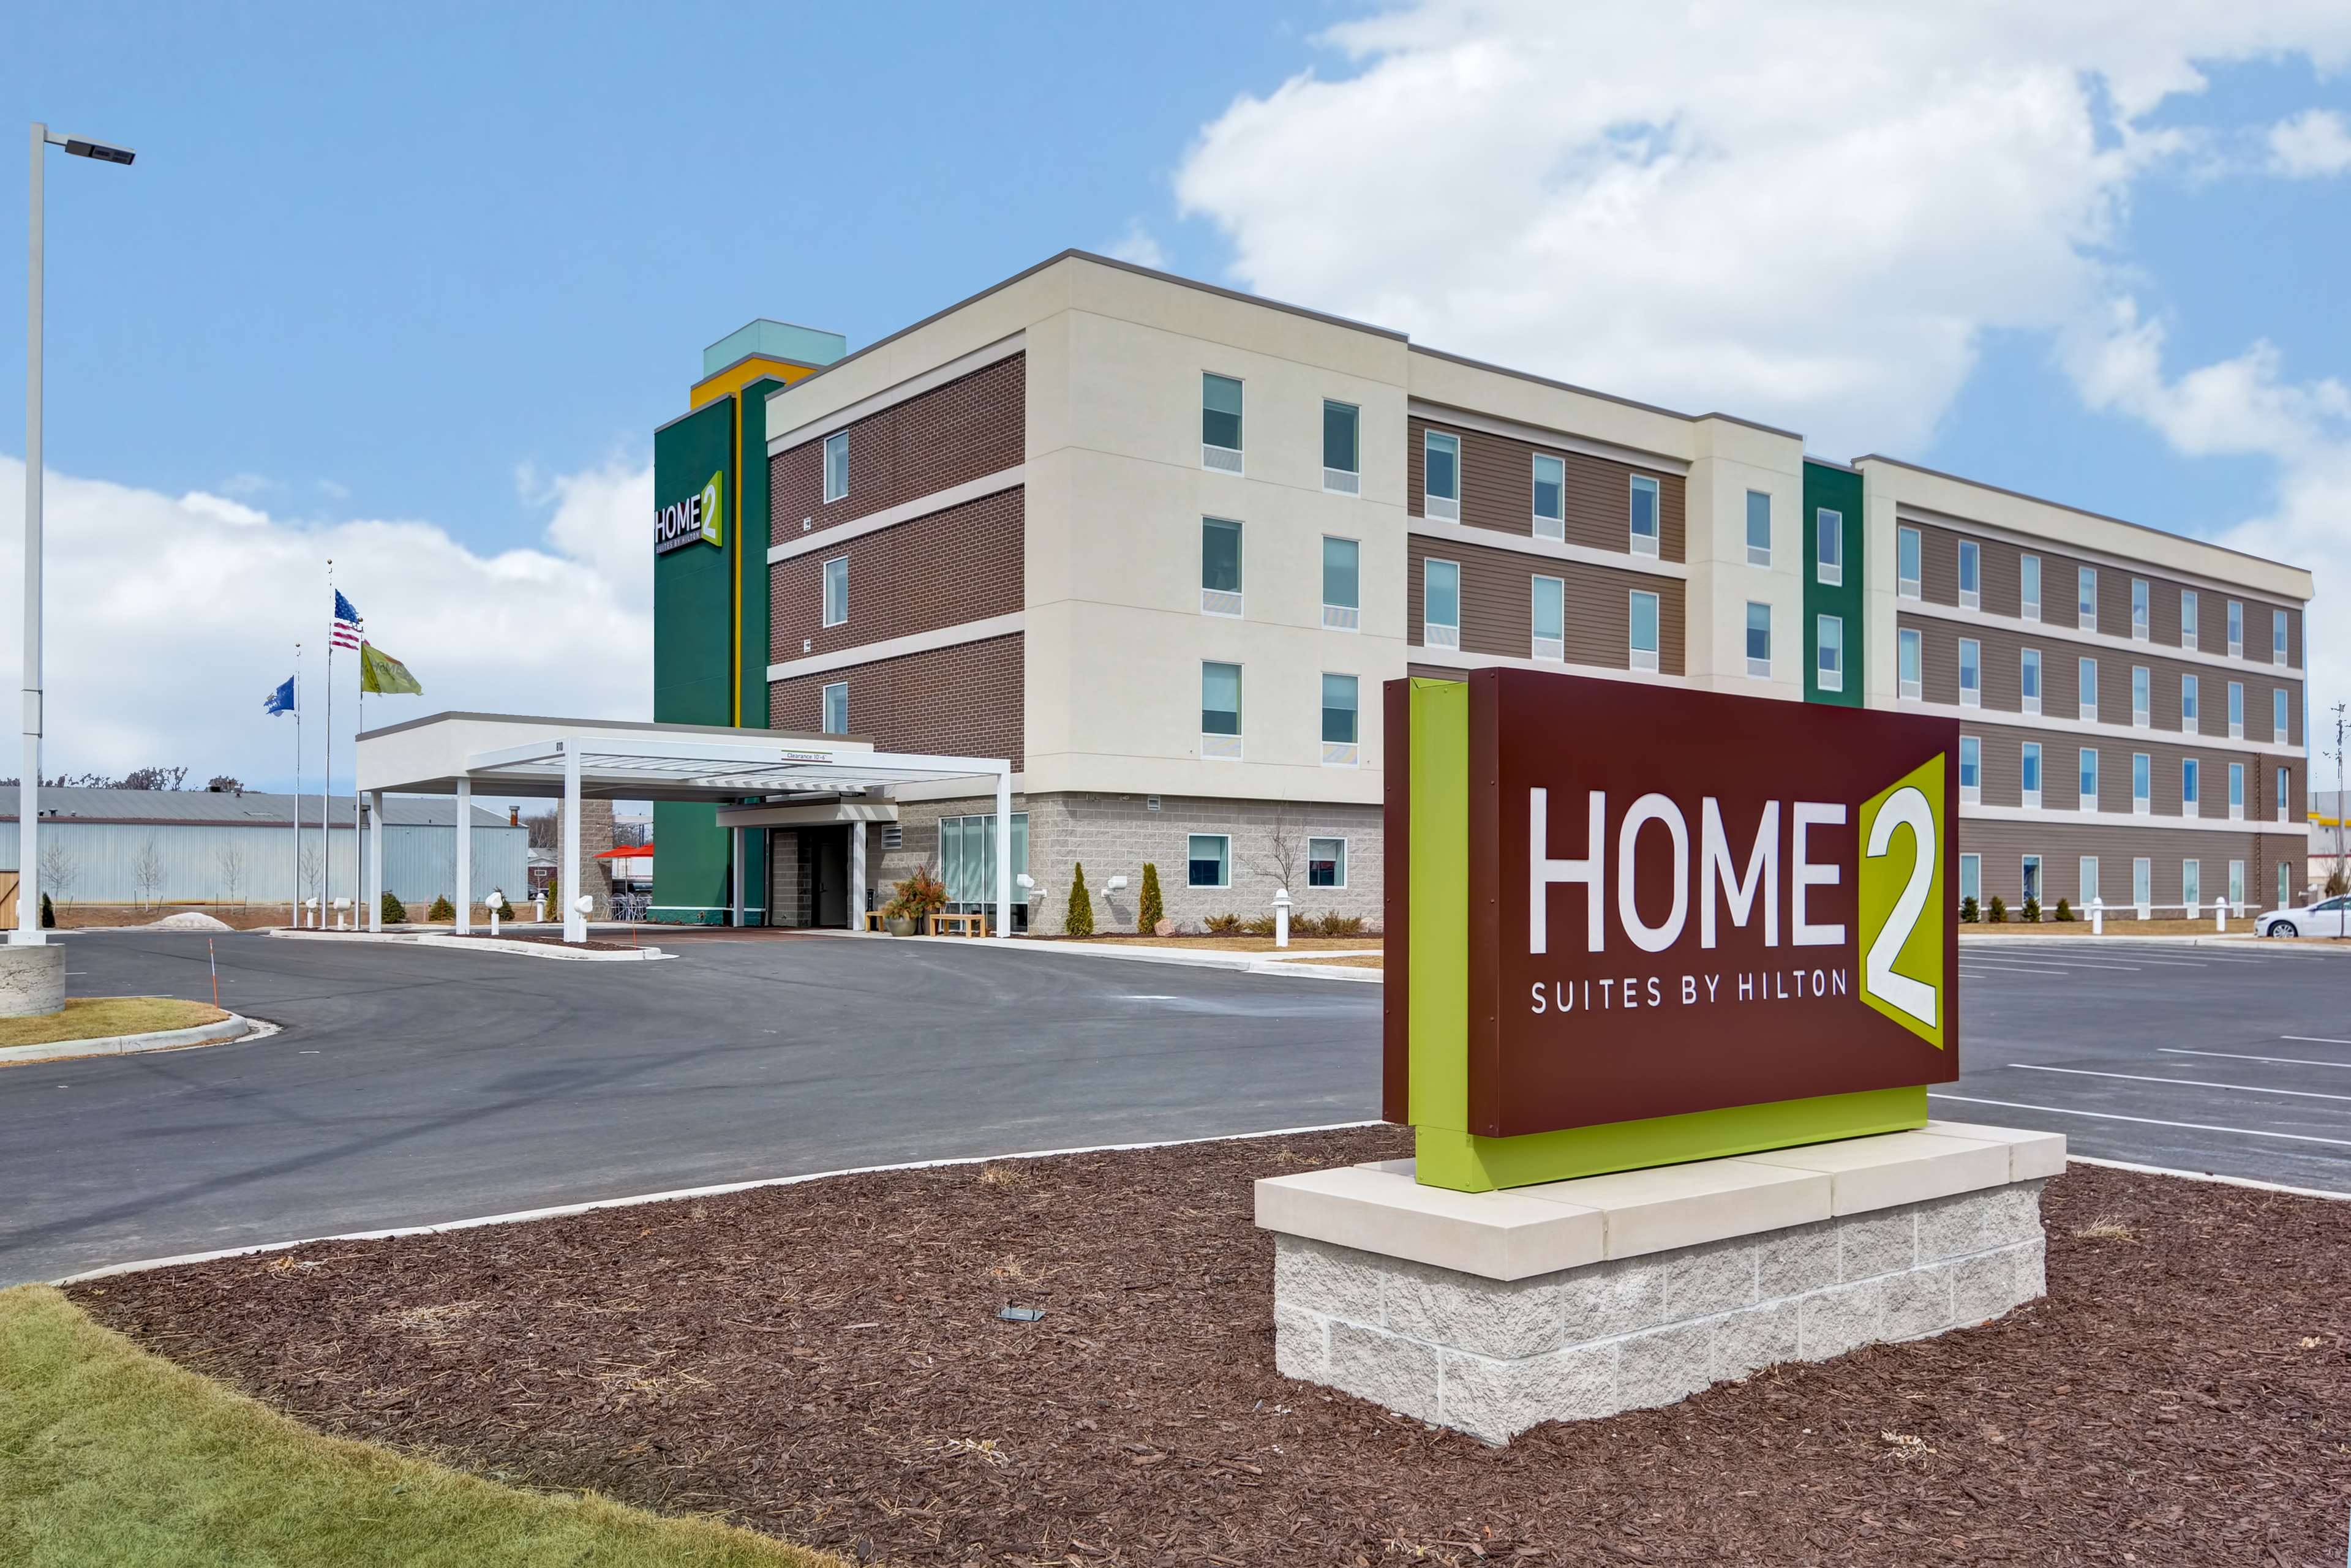 Home2 Suites by Hilton Green Bay image 2